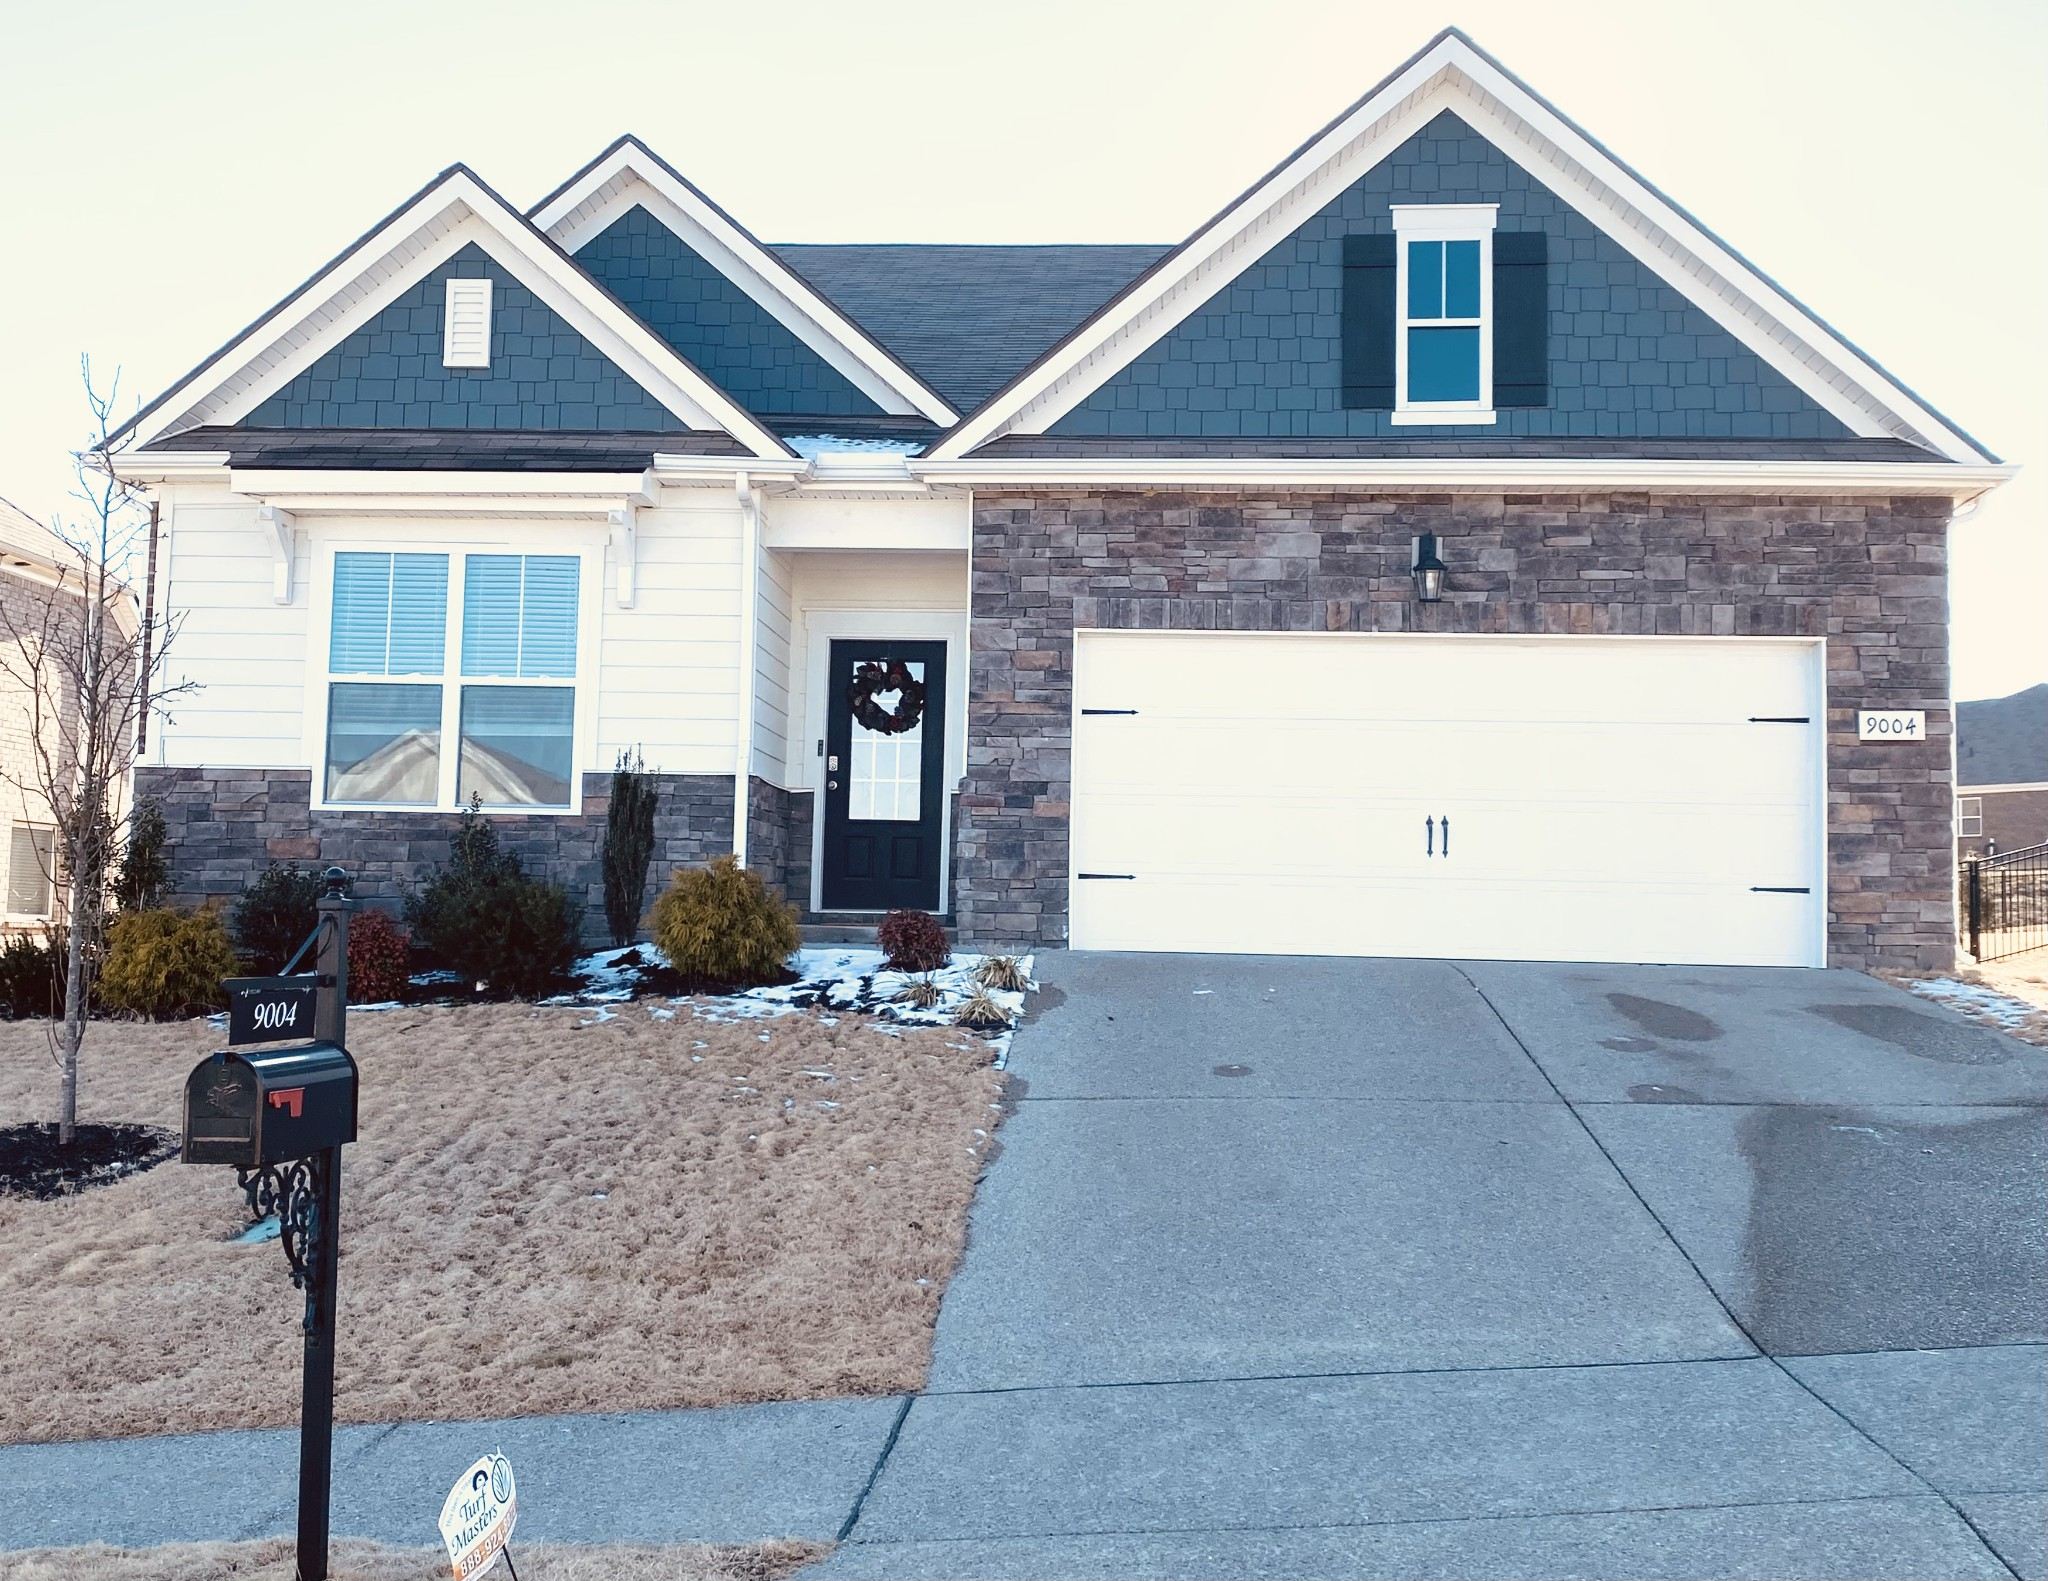 "Sought after Hampton Springs neighborhood: ""Signature"" home with upgrades. This almost-new single-family house is equipped with smart home technology, stainless steel appliances (including refrigerator), granite countertops and island, hardwood floors, fireplace, wainscoting and molding. Outside has fresh landscaping, fenced backyard, covered back porch.  It is located in the coveted Battle Creek school zone and  conveniently located to I-65 and Saturn Parkway. This beautiful home is a must see!"